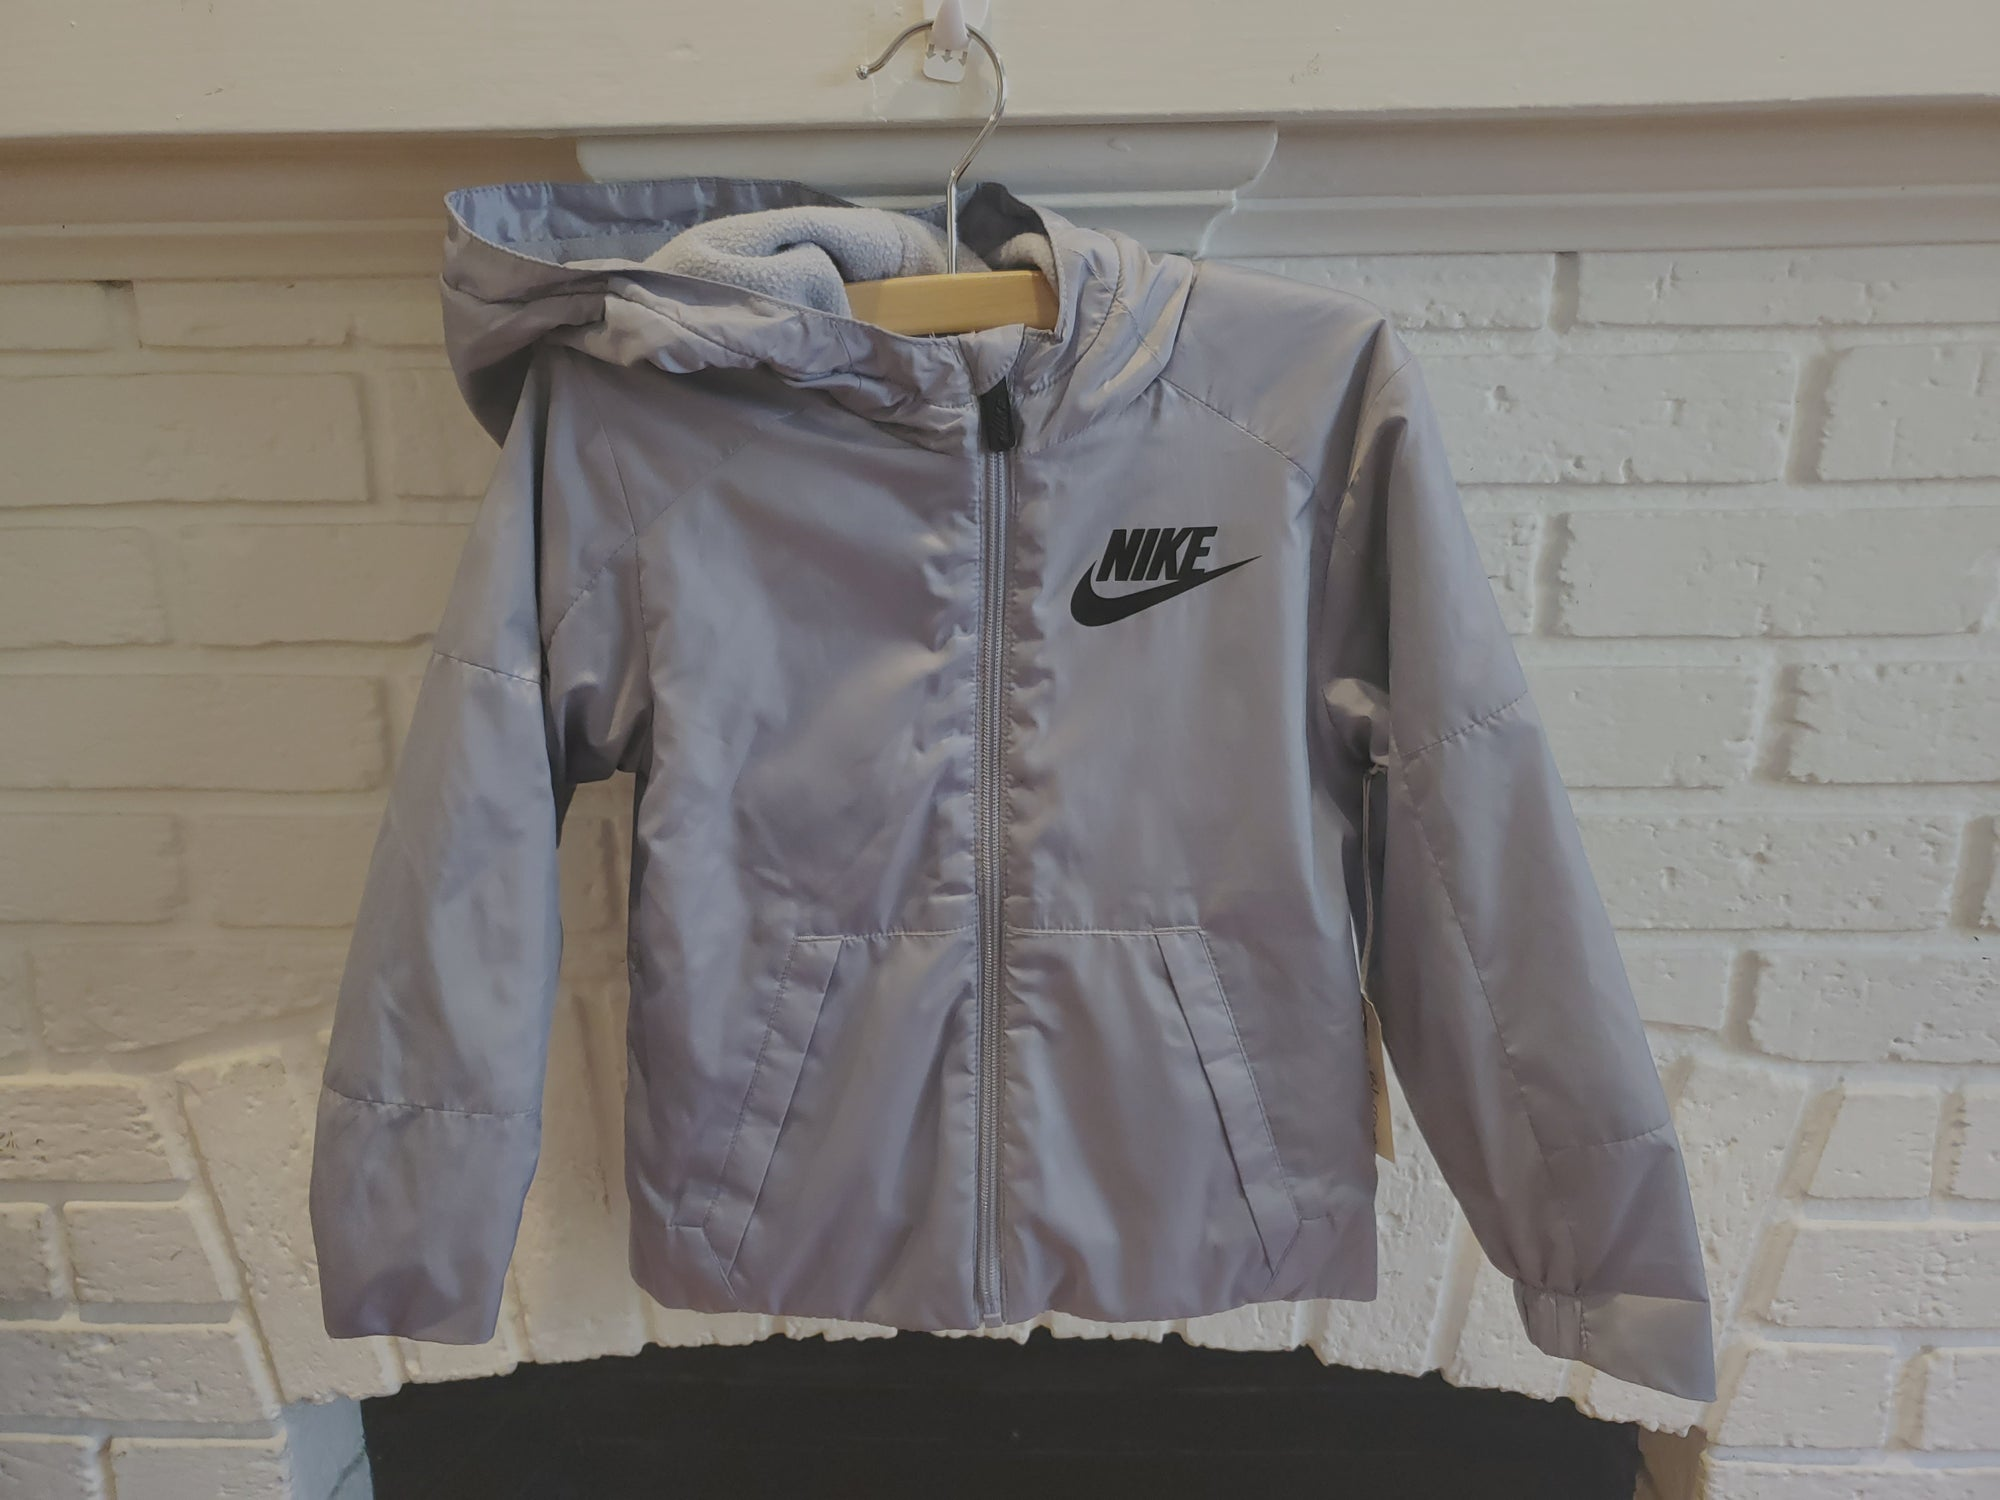 Resale 4T Nike Fleece Lined Hooded Jacket  - Grey